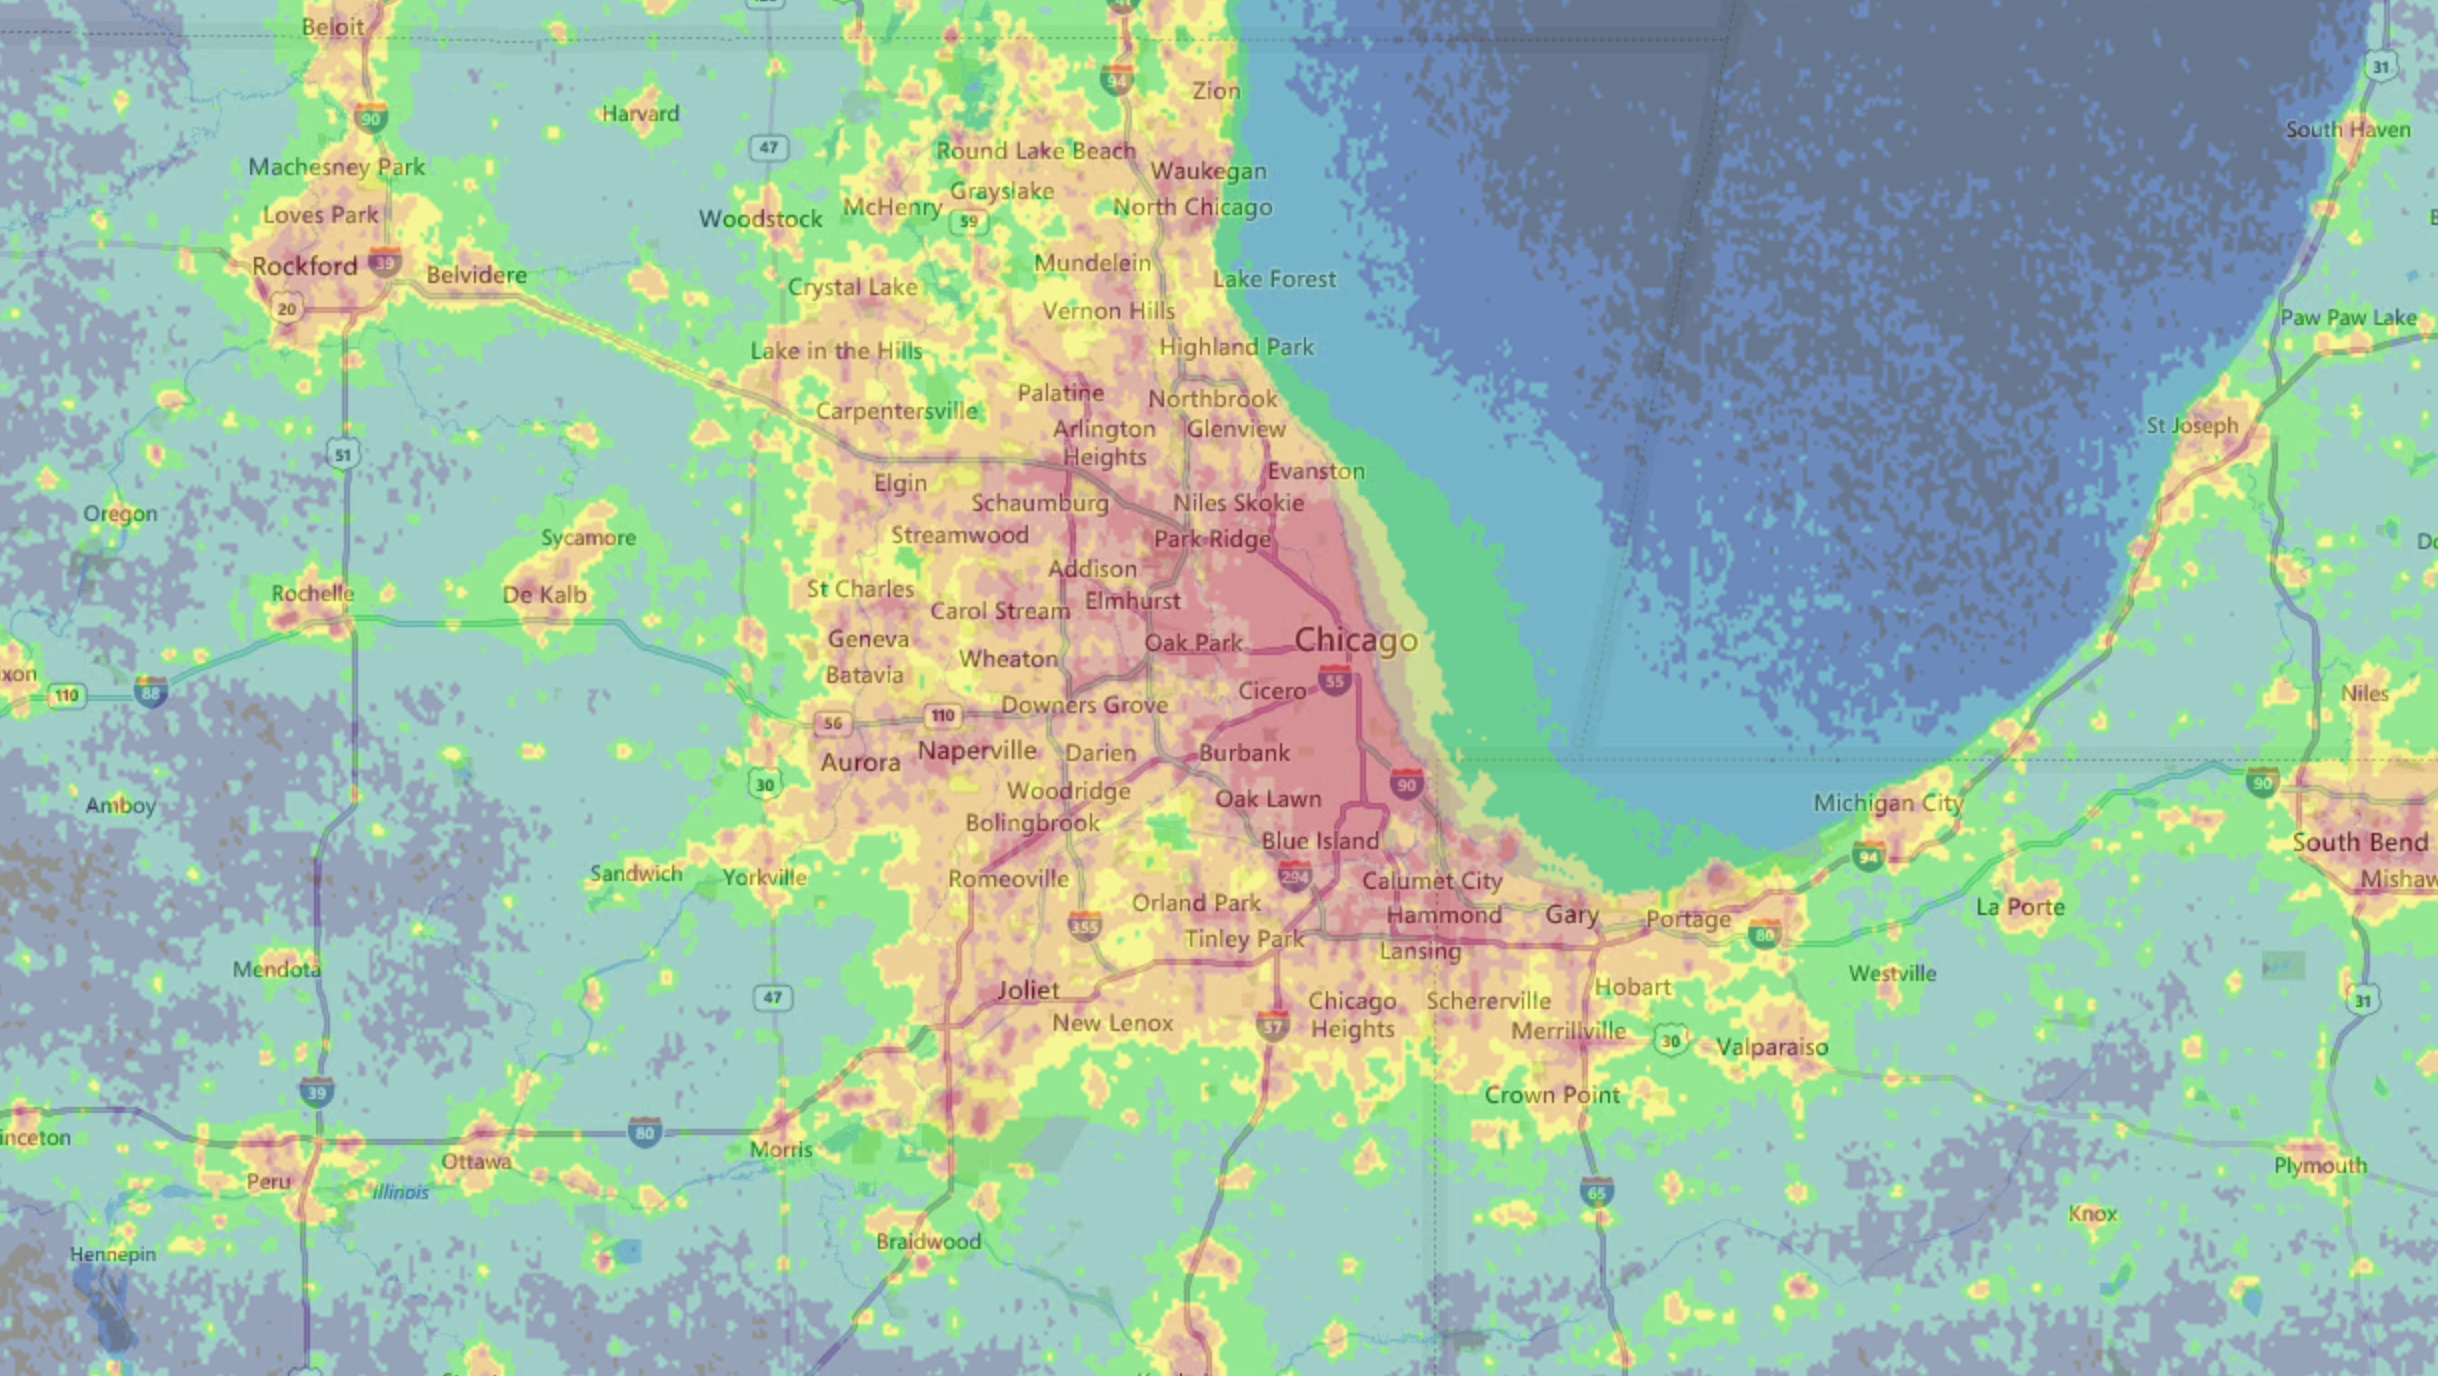 Light pollution in Chicago limits the visibility of the stars to the unaided eye. This heat map for light pollution shows places in the Chicagoland area where you might not be able to see as many stars as other areas. (Courtesy https://www.lightpollutionmap.info)